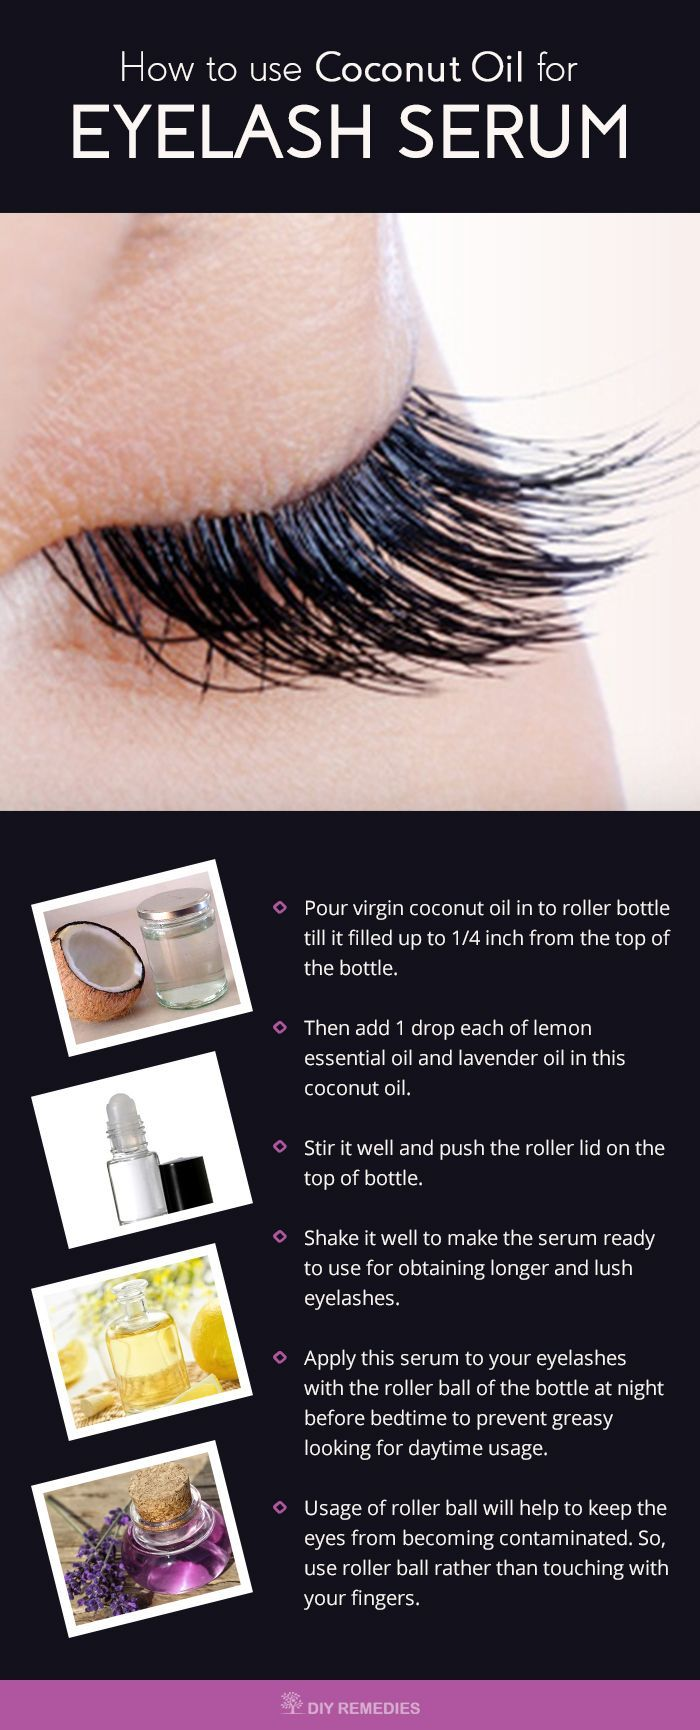 How to use Coconut Oil for Eyelashes:                                                                                                                                                                                 More